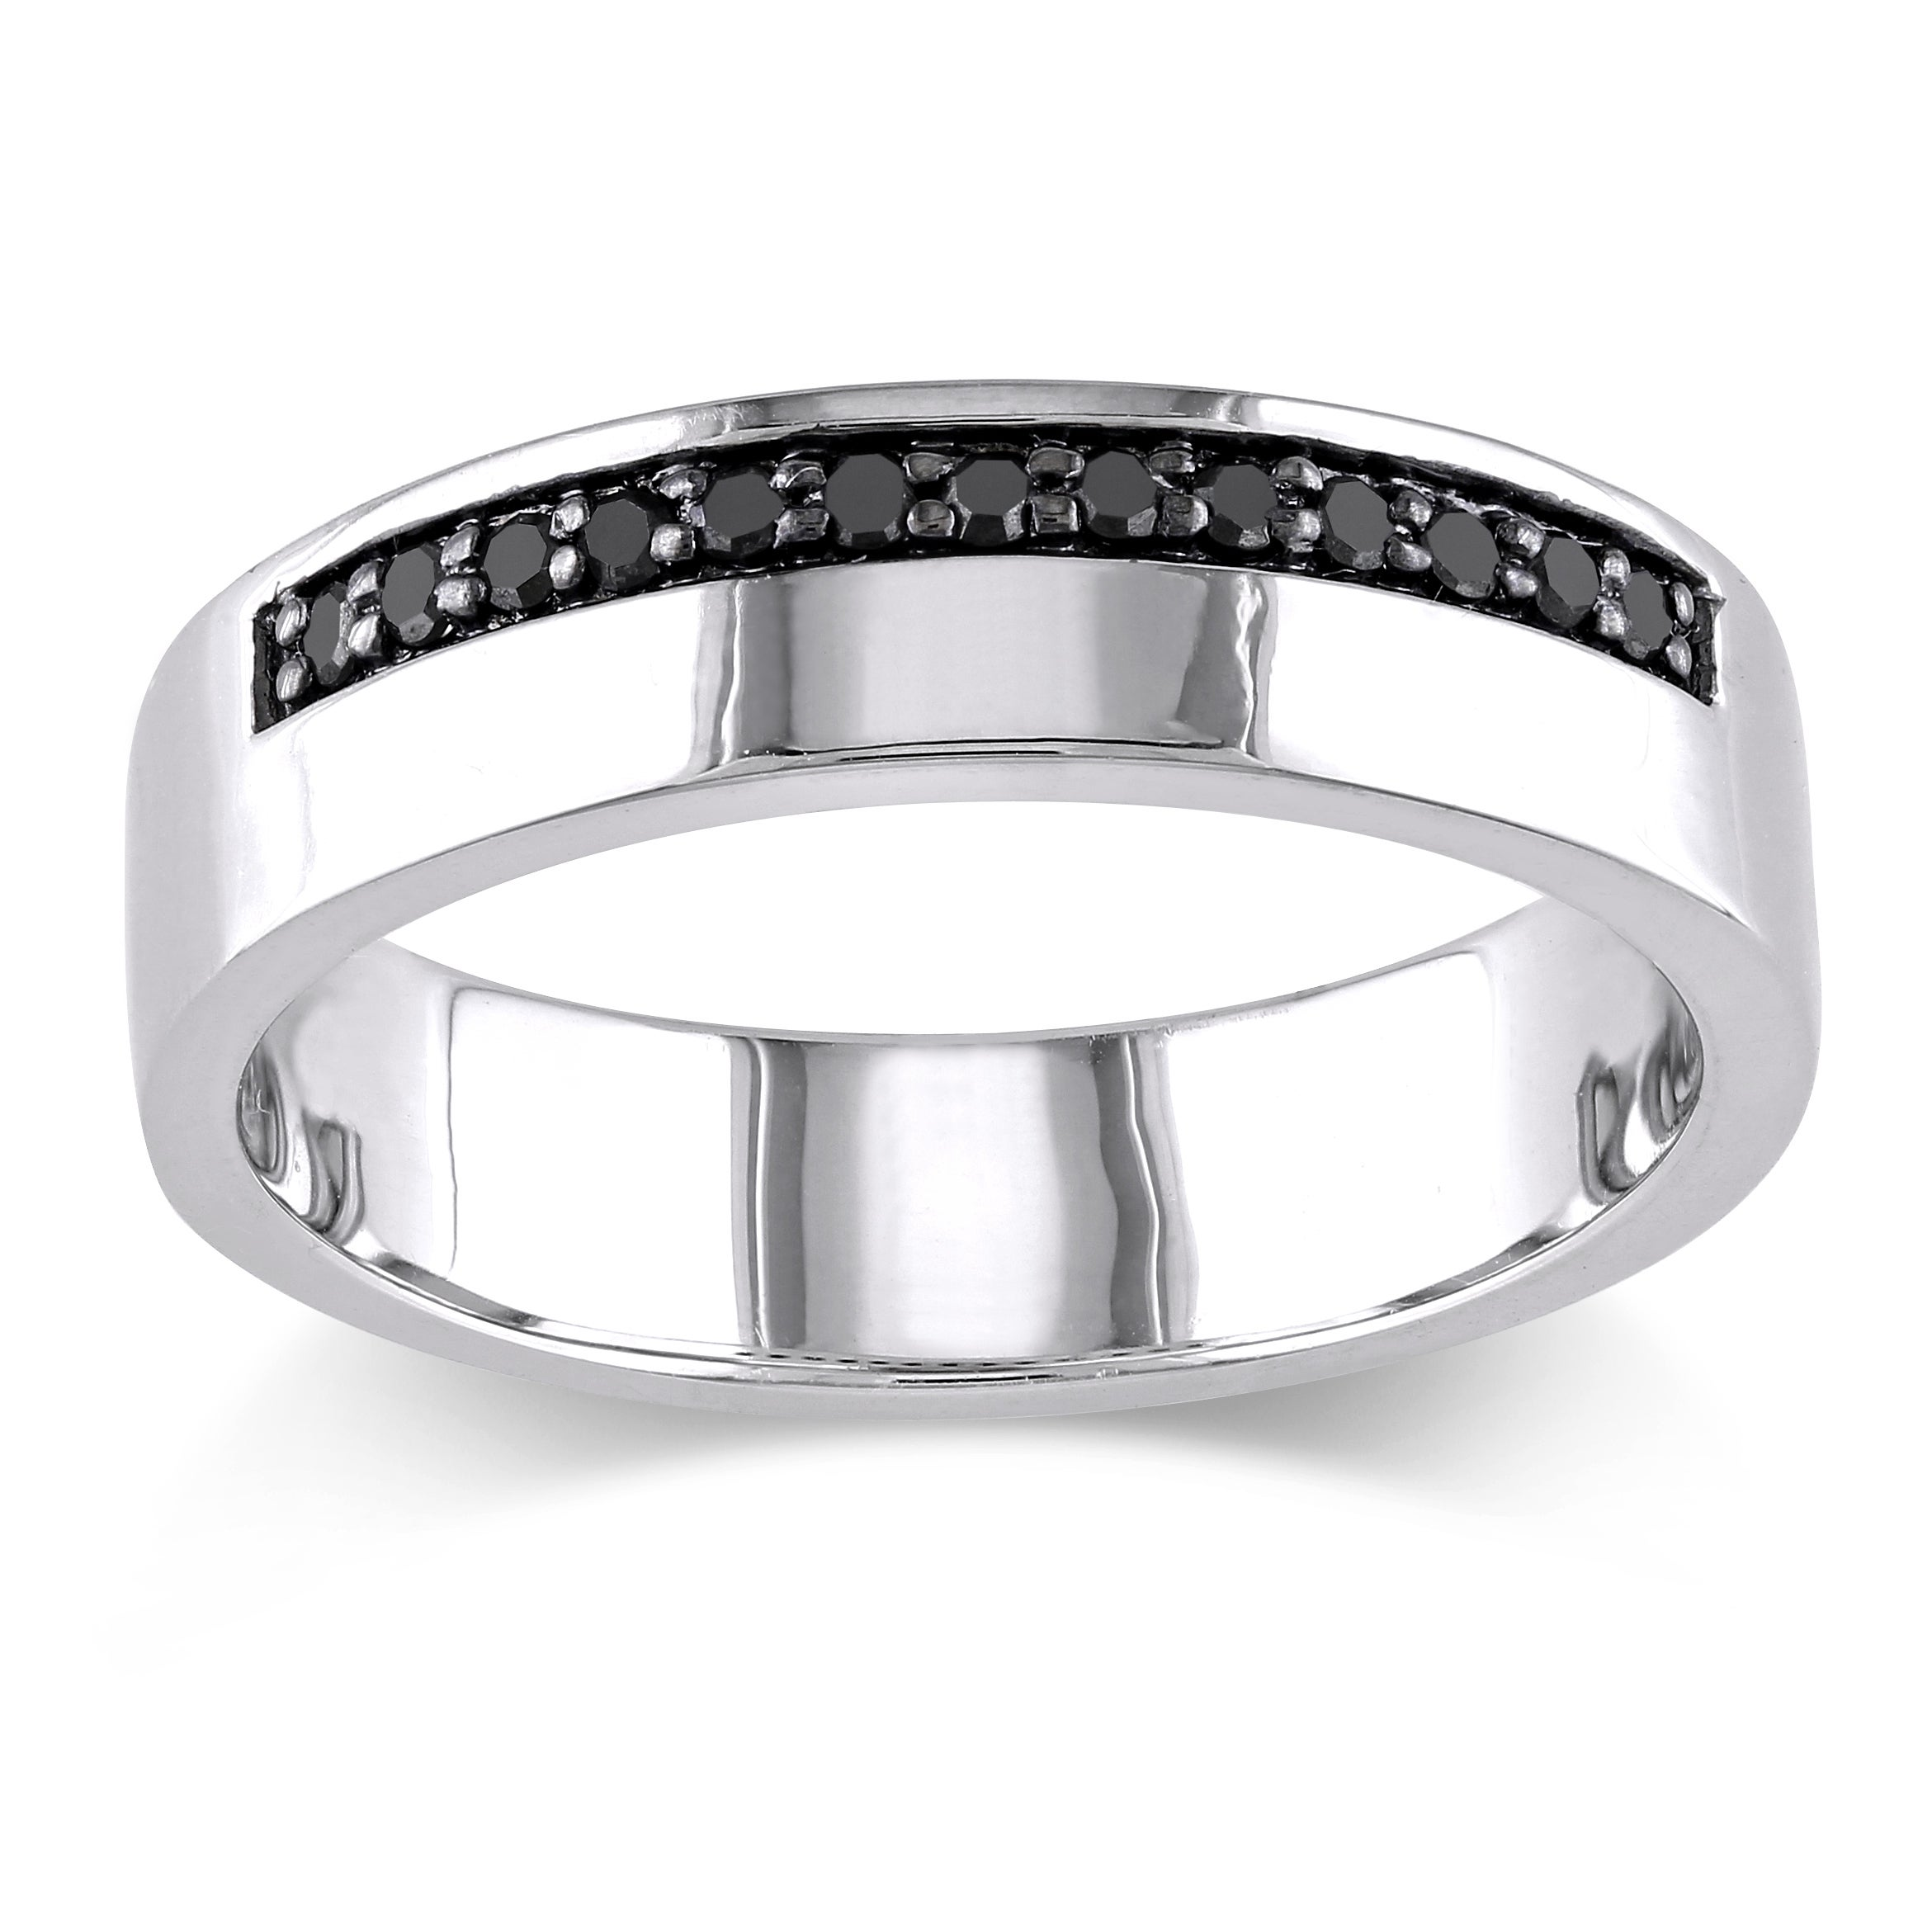 Sterling Silver Mens Wedding Bands Groom Wedding Rings For Less